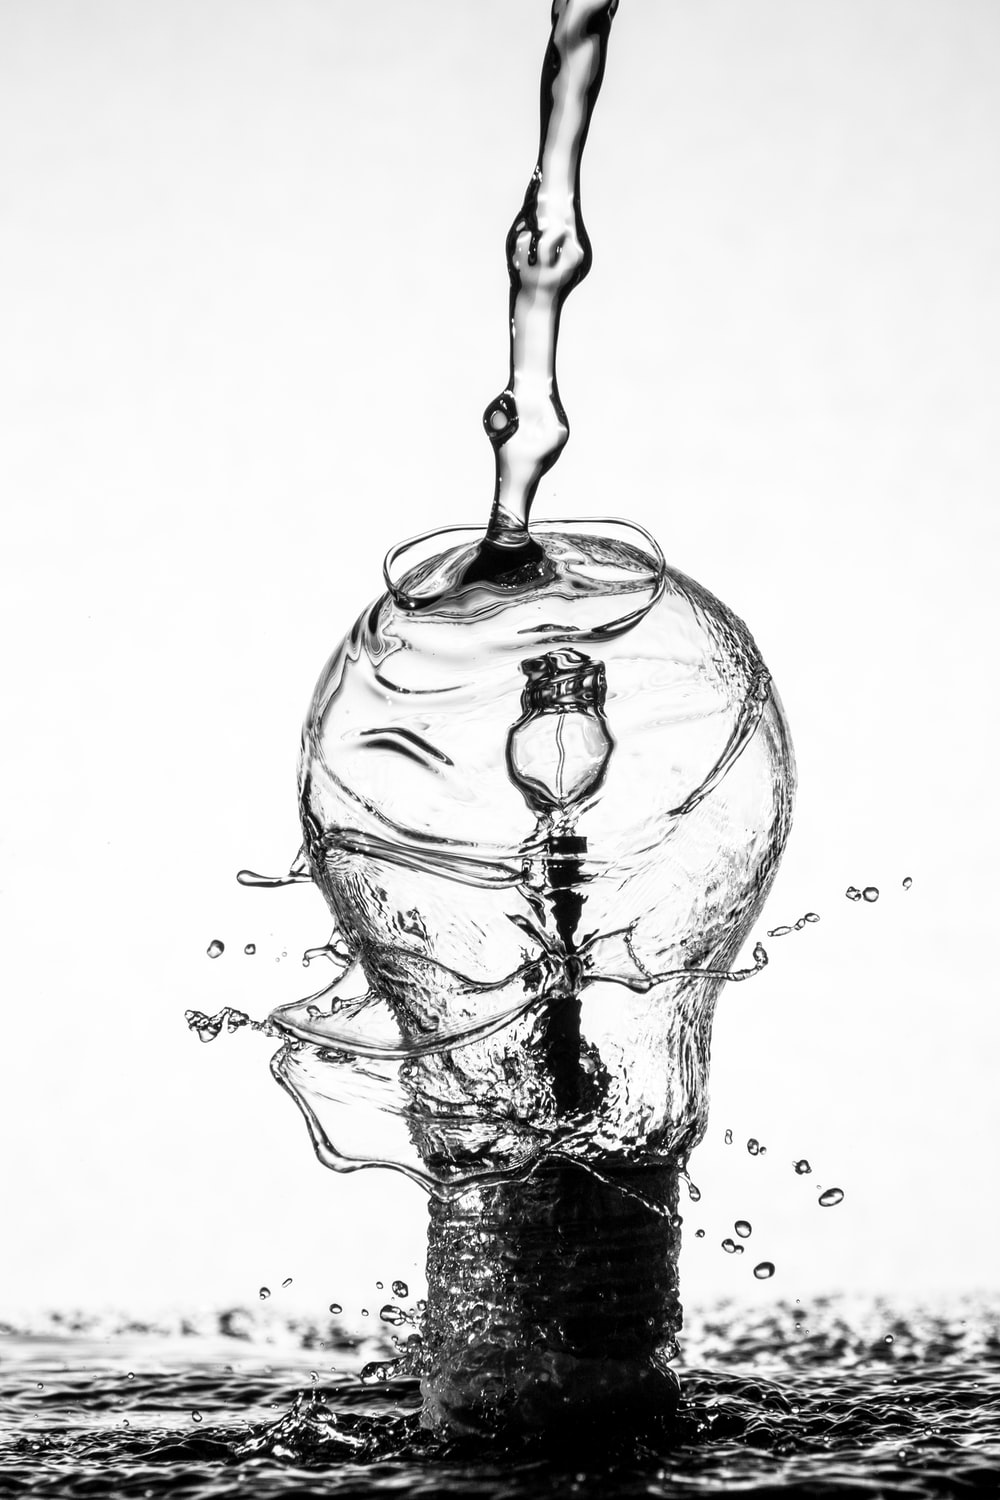 water dropping on light bulb